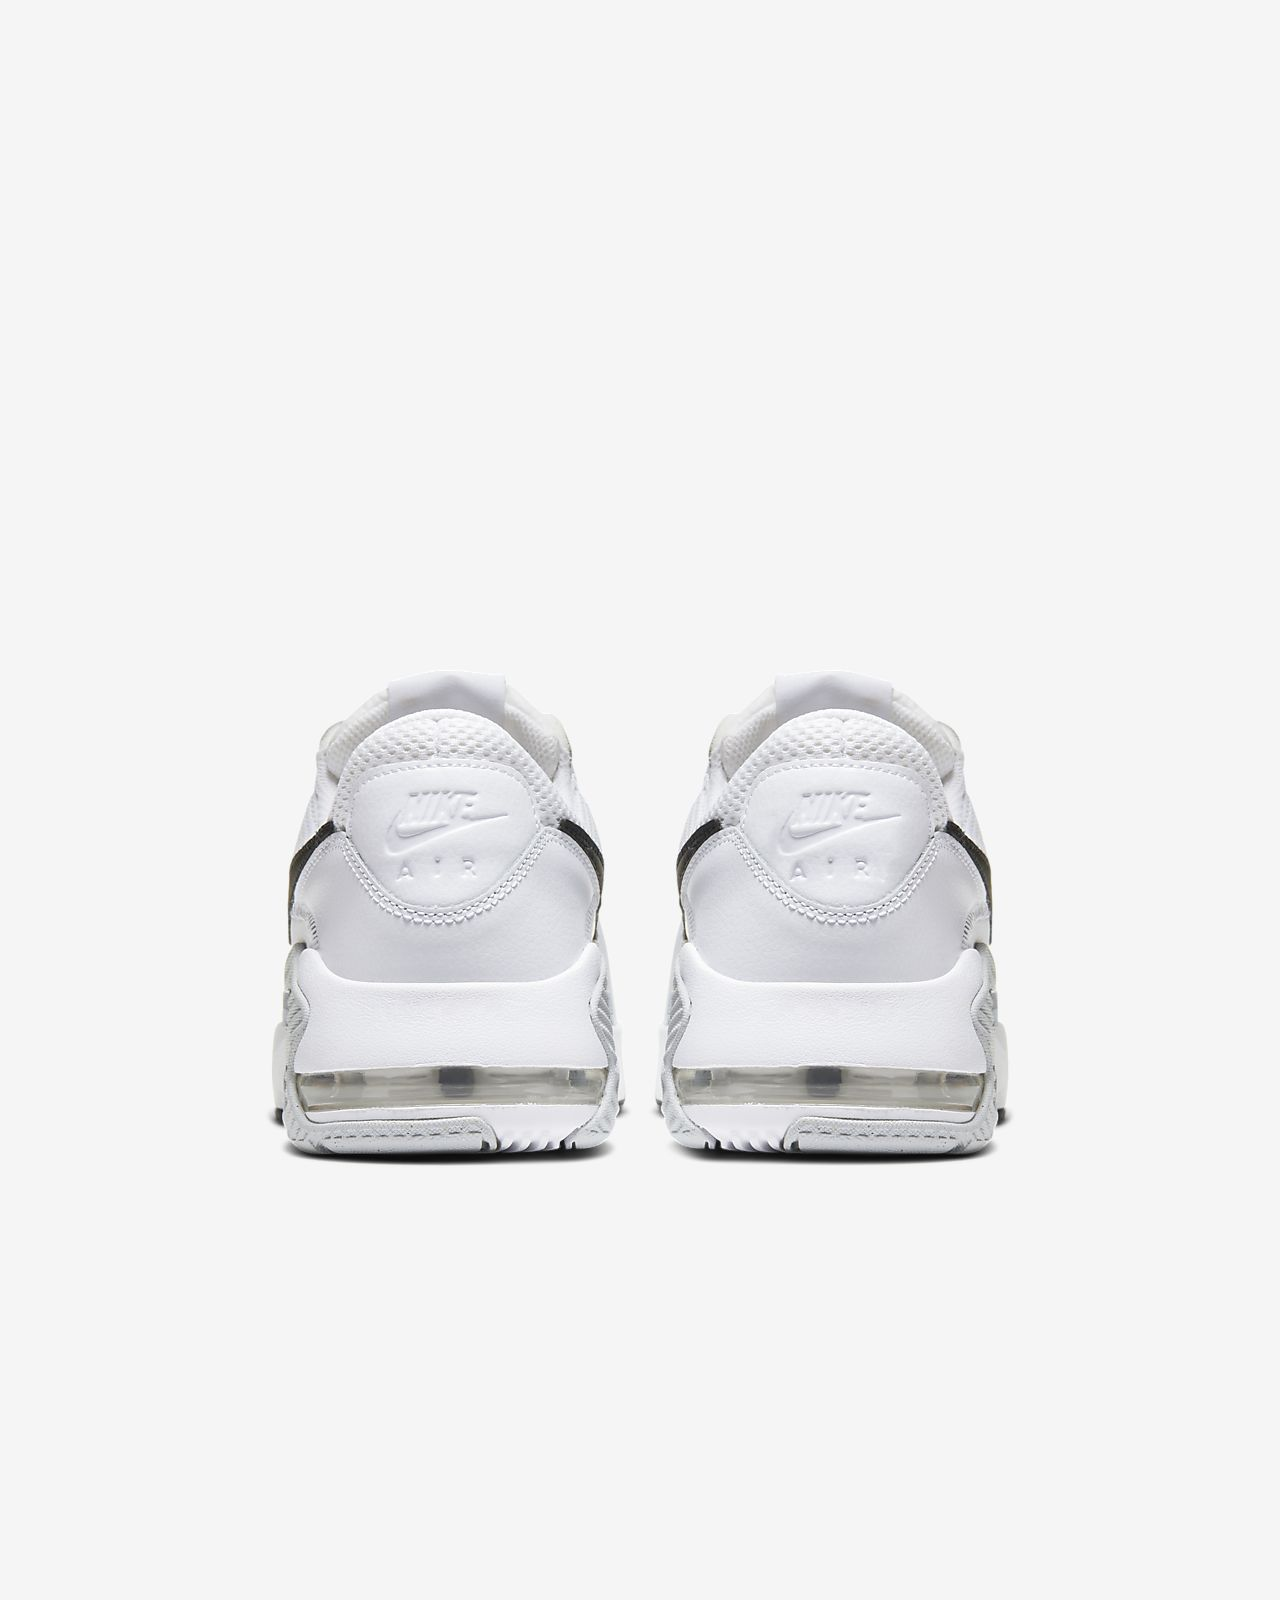 Nike Air Max Excee Philippines Men's Shoe (White)